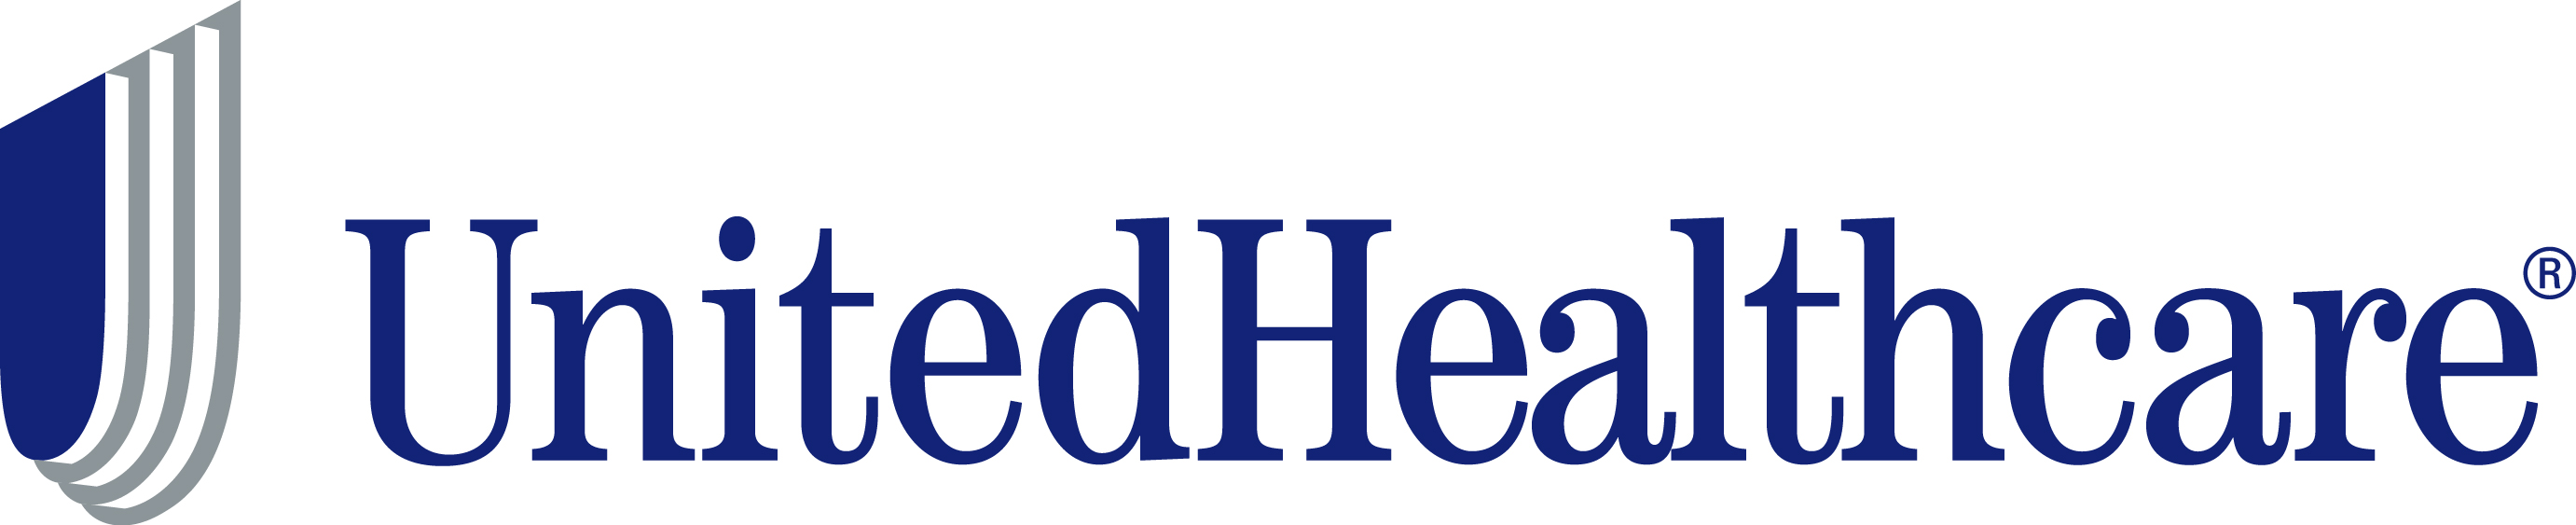 1 United Healthcare